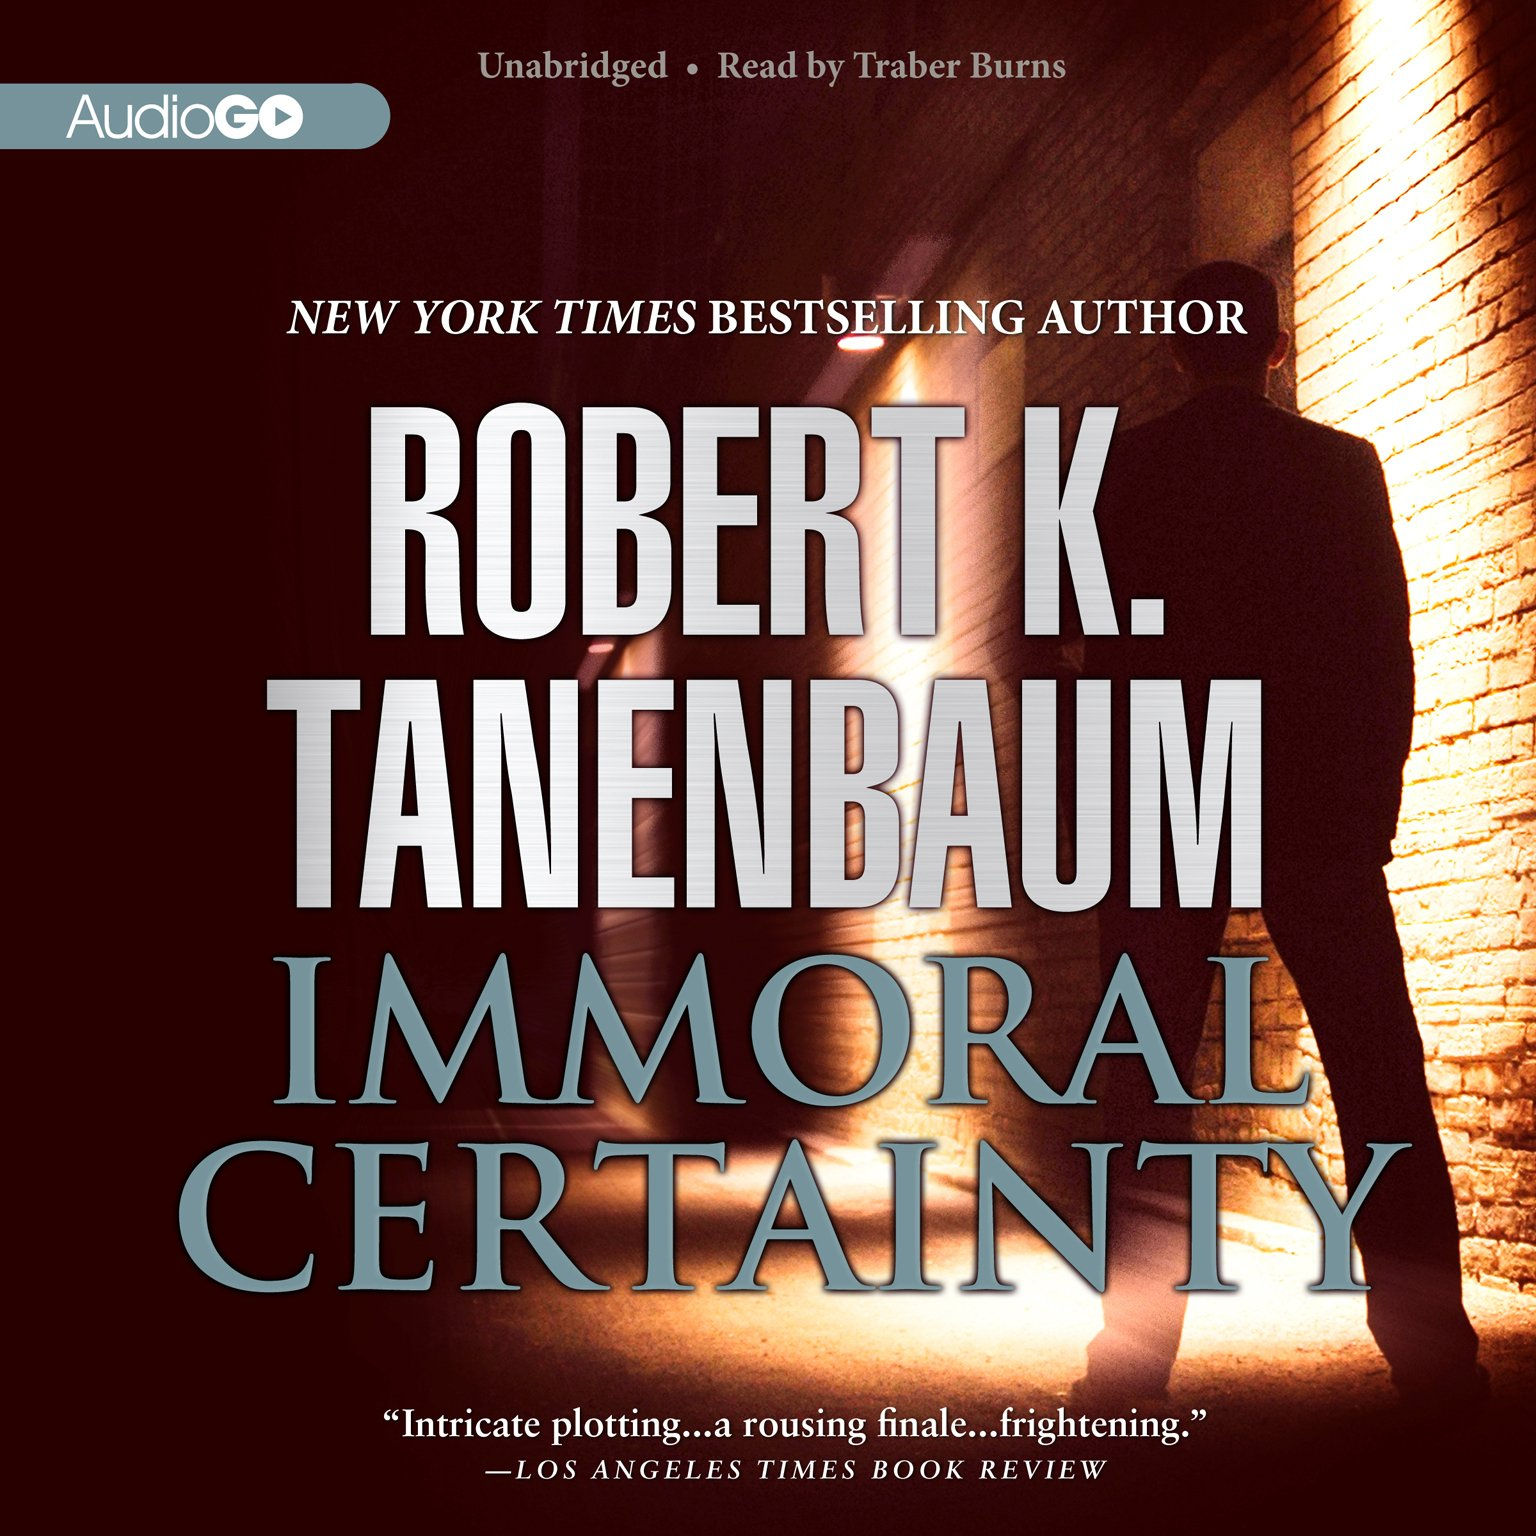 Immoral certainty, abhorrent acts